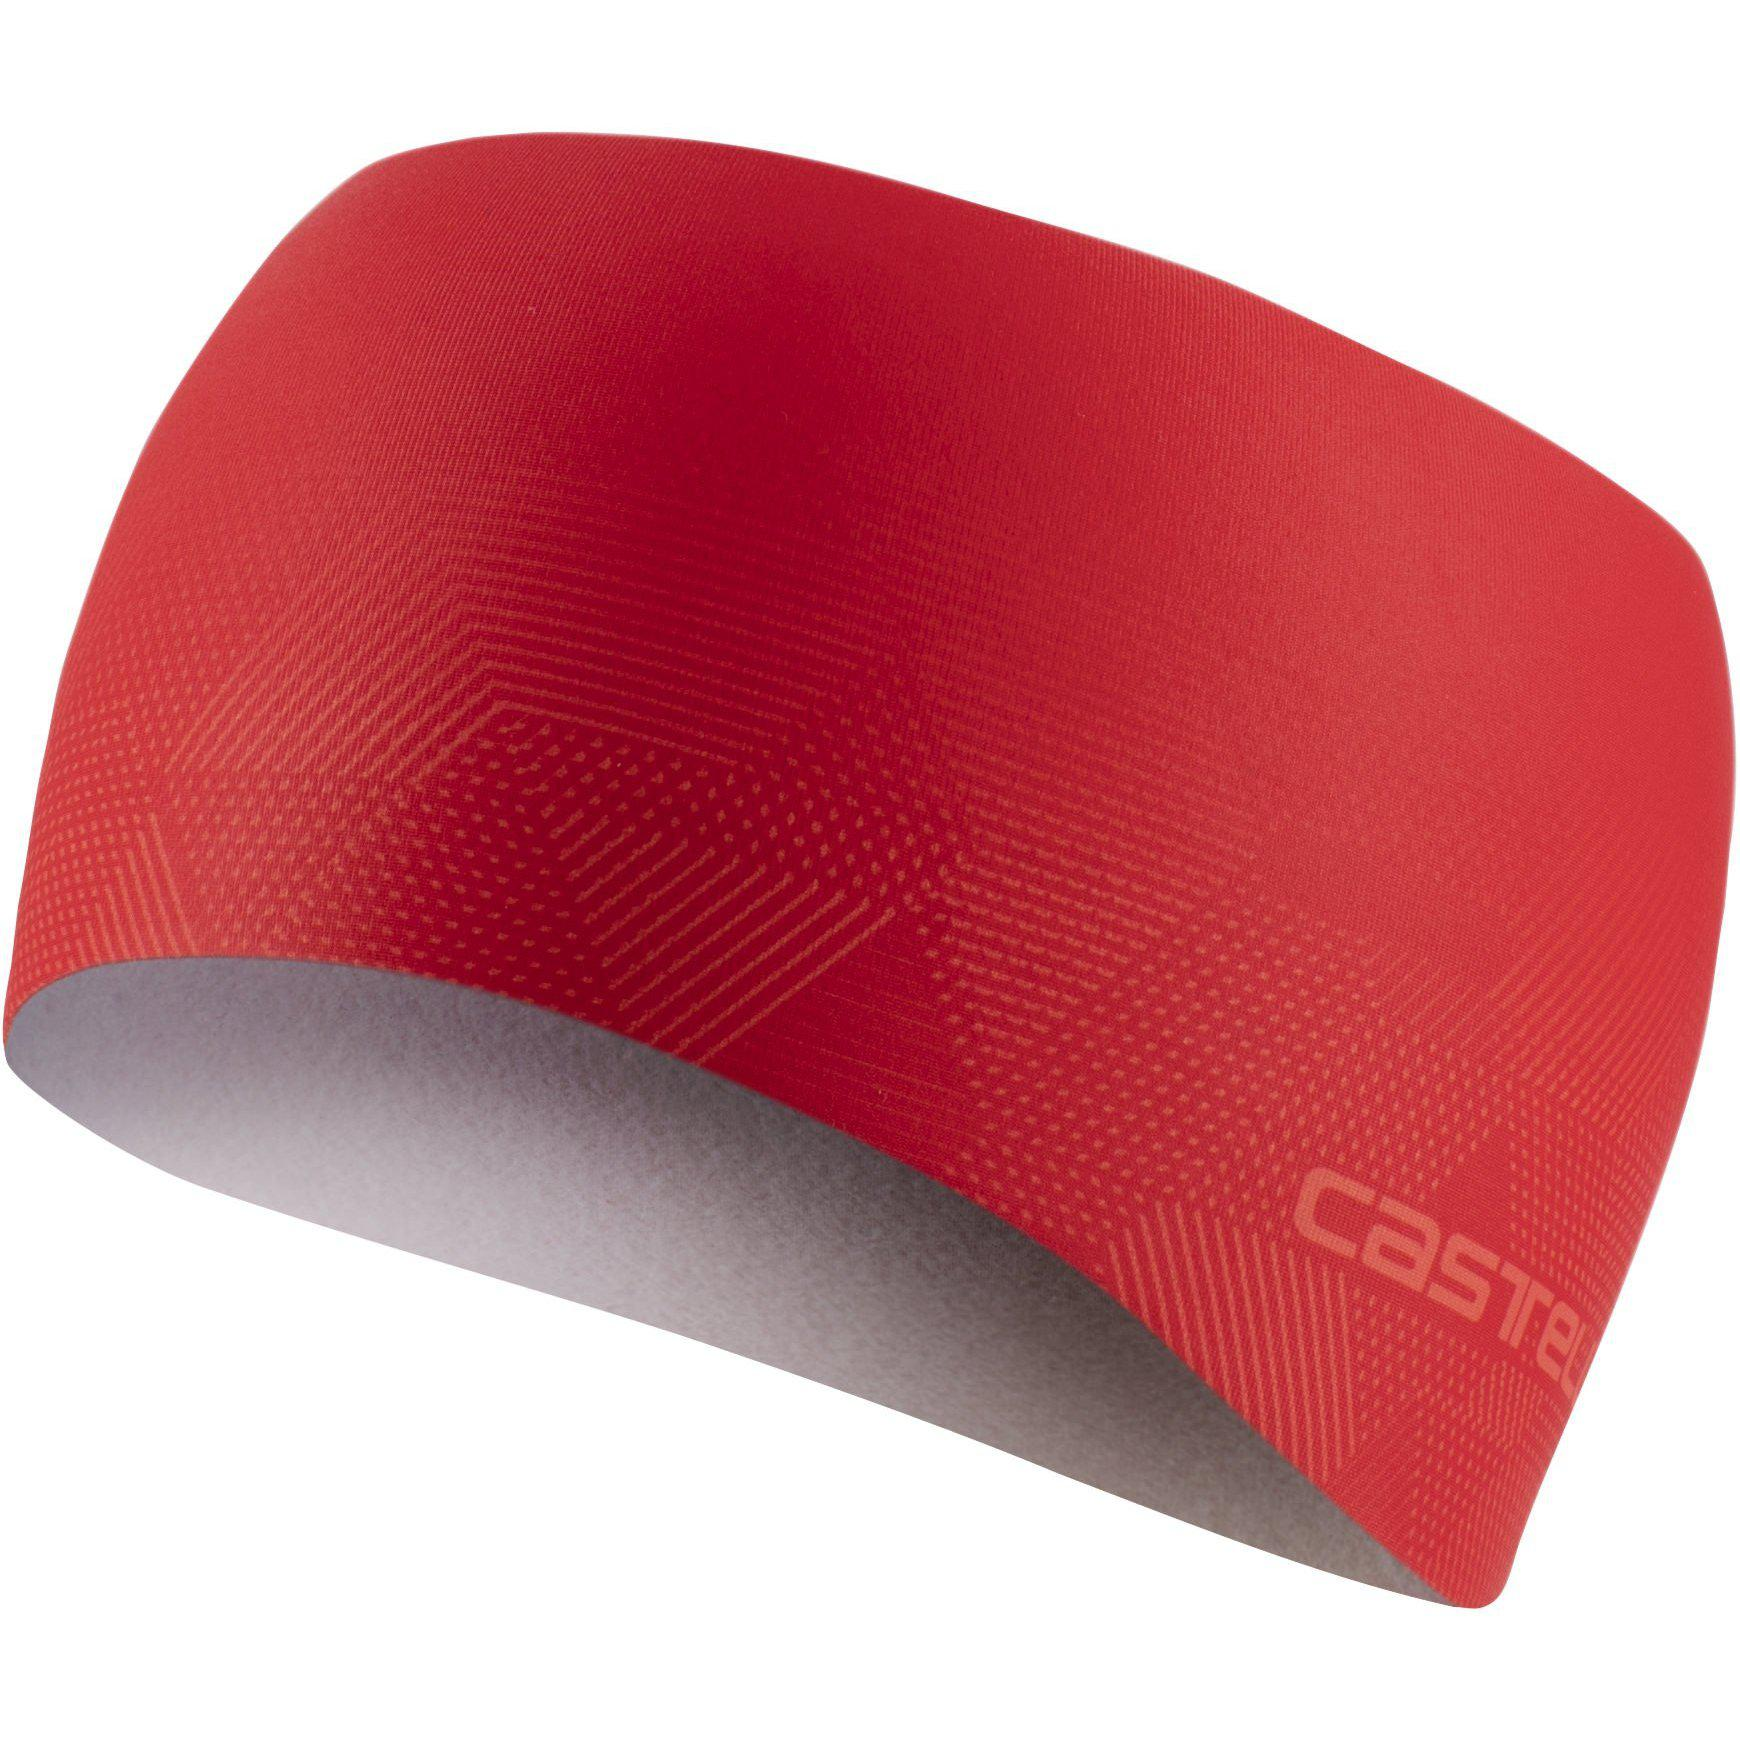 Castelli-Castelli Pro Thermal Headband-Red-UNI-CS205460238-saddleback-elite-performance-cycling